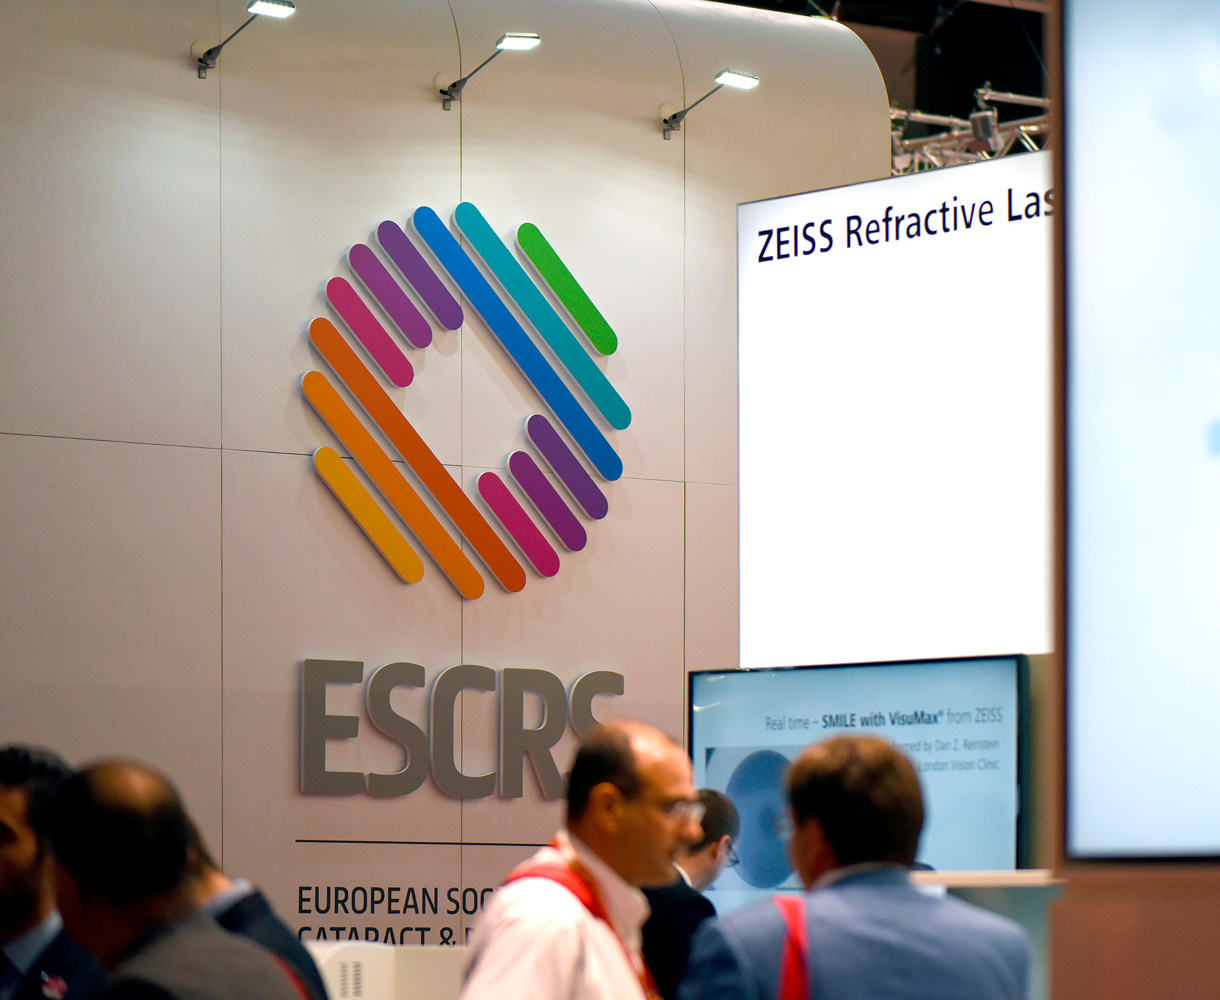 ESCRS Brand Development Conference tradeshow design Barcelona